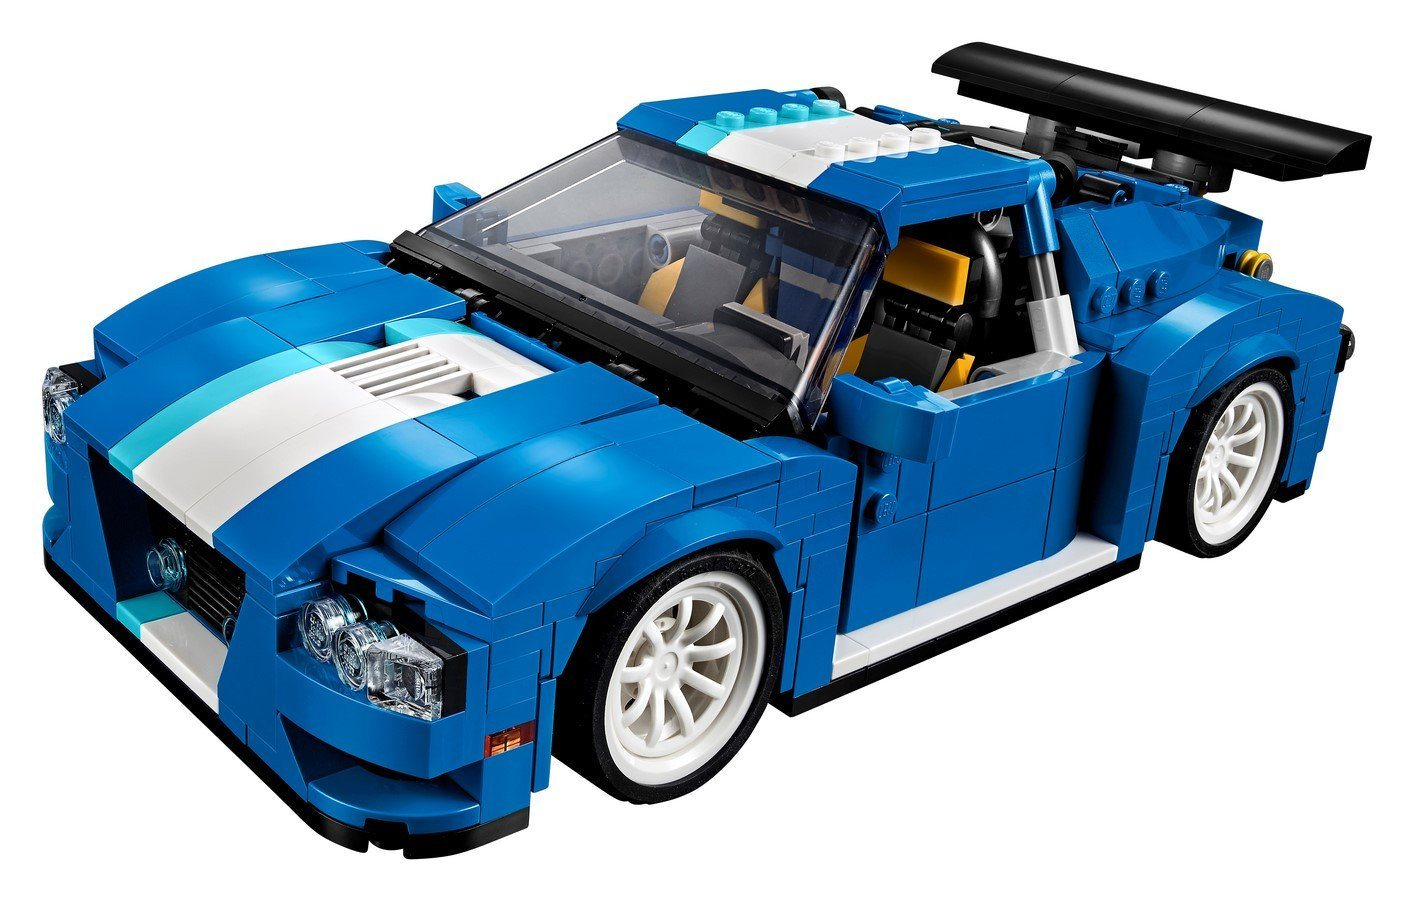 31070 Turbo Track Racer - LEGO® Bricks World